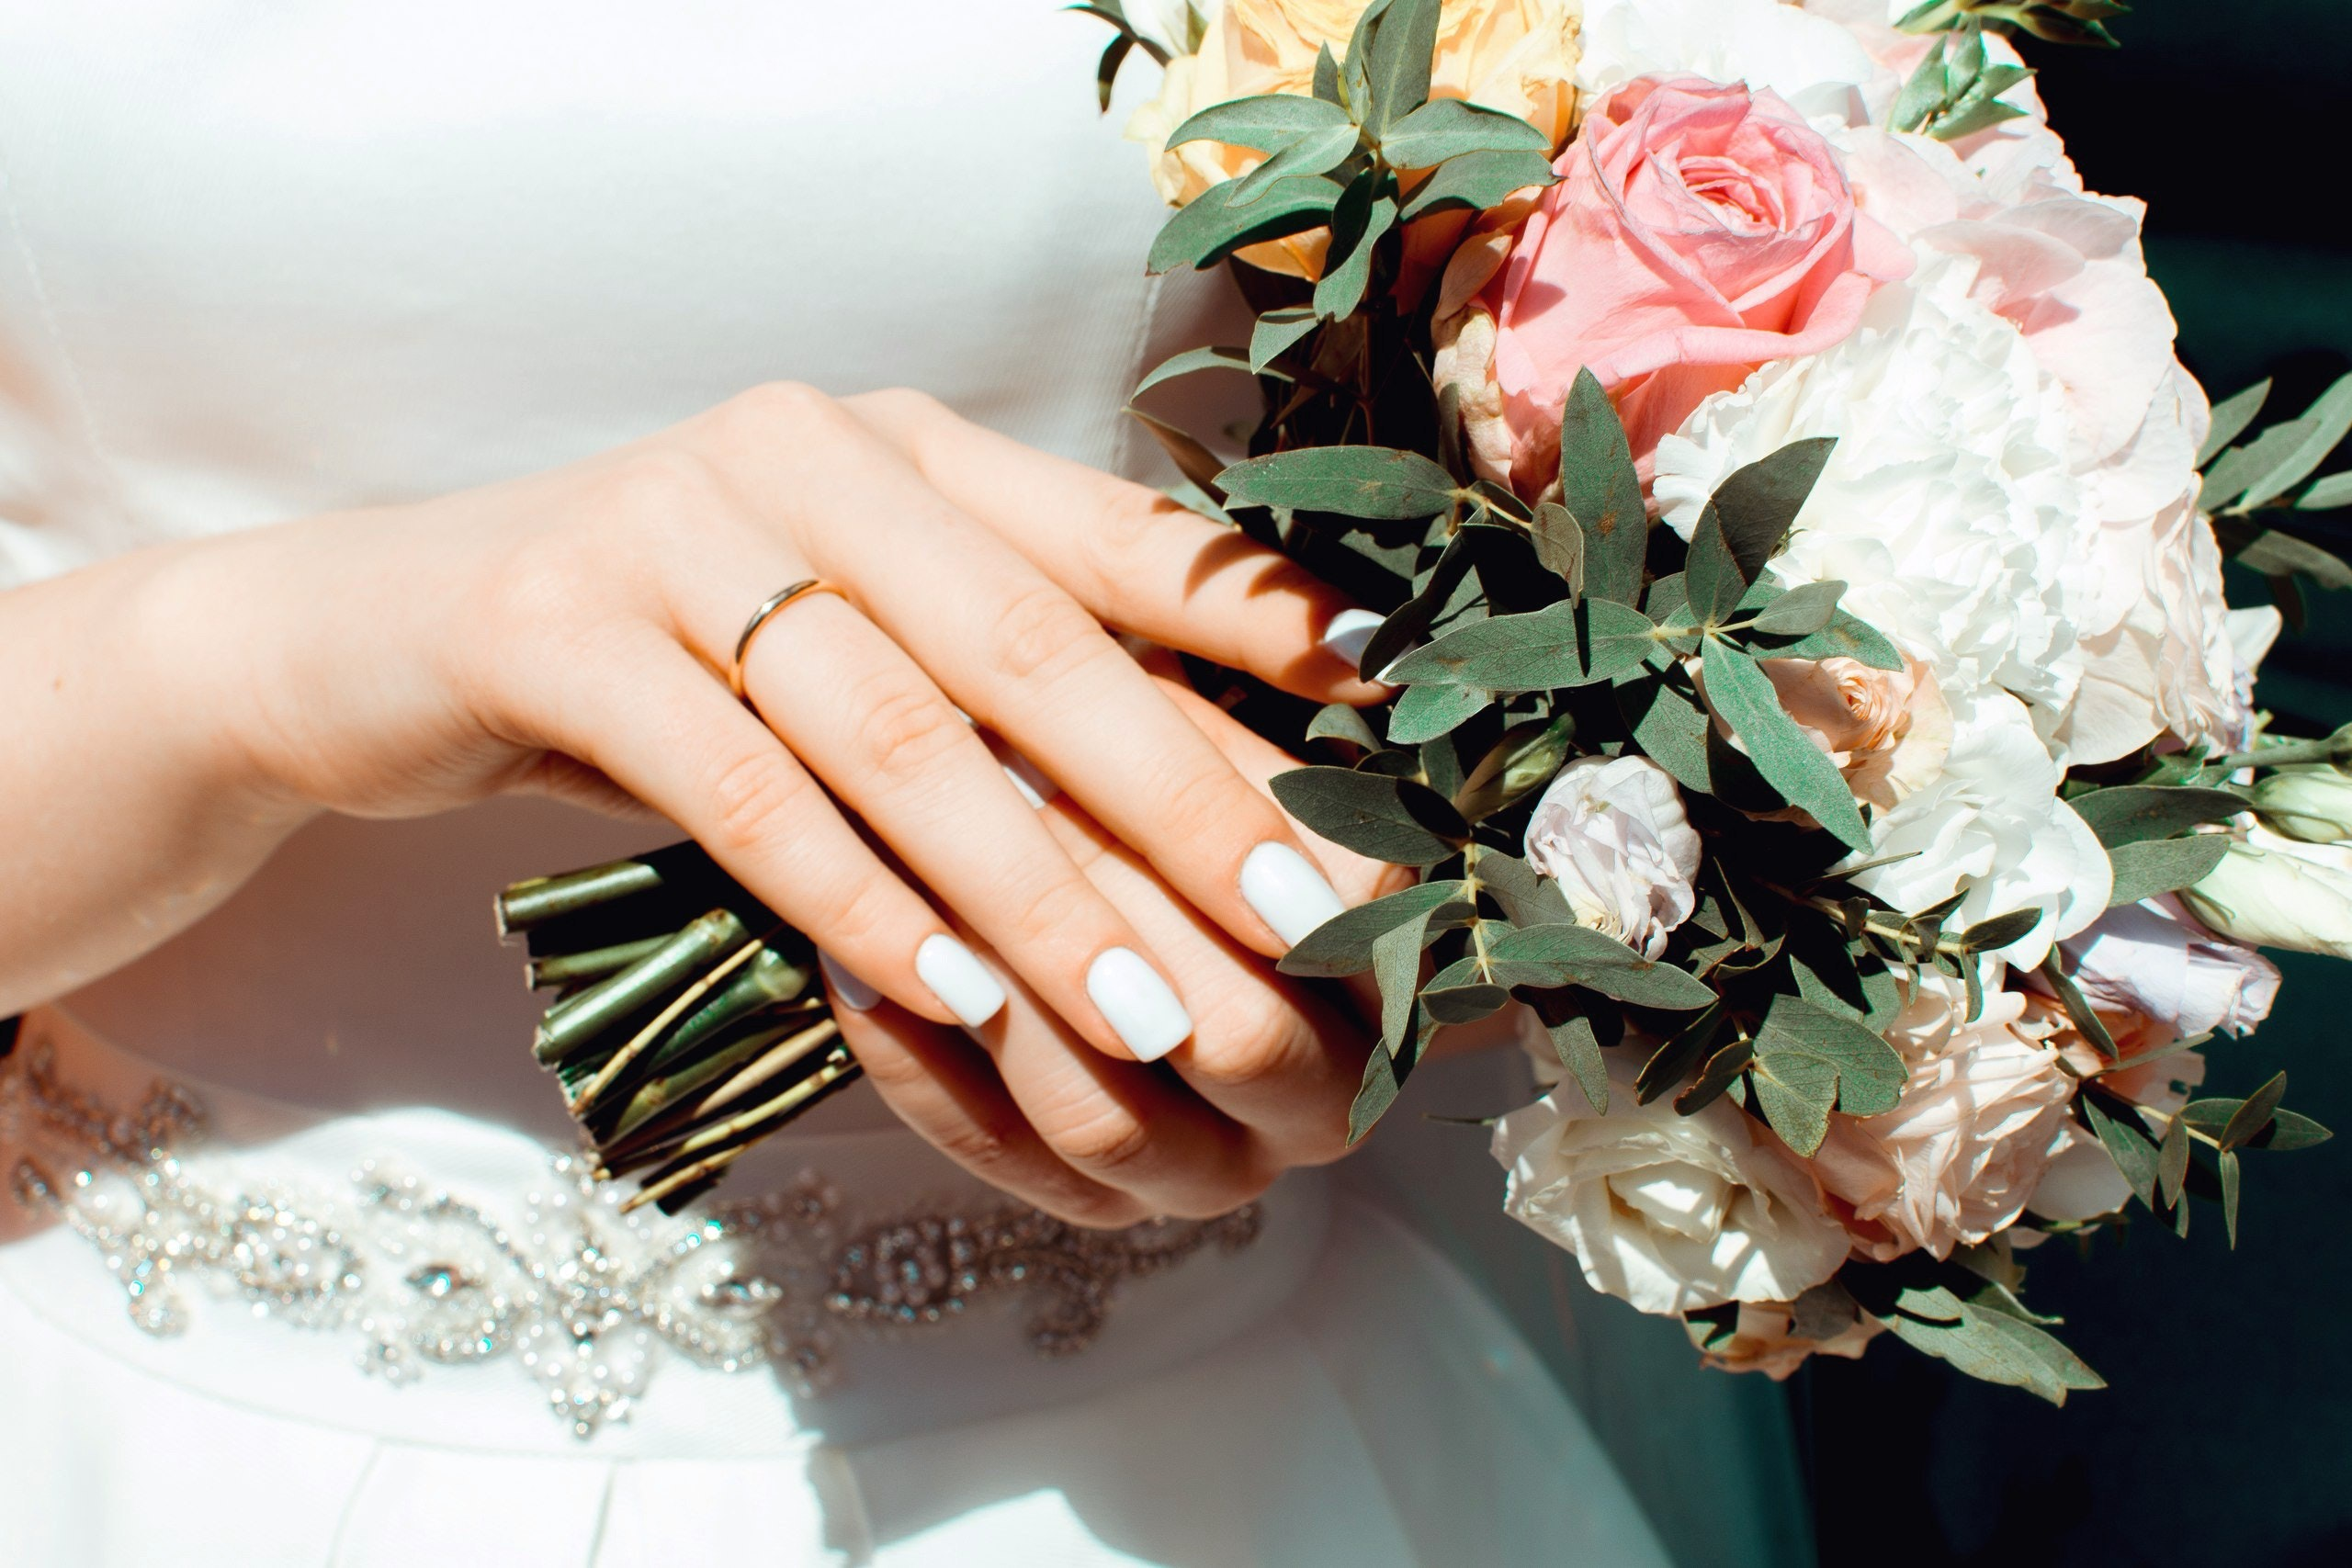 ideas romantics heirloom sourced of new bespoke bring to round for latest our soothing and ombre custom diamonds up ethically the colors romance pin gems ombr band cluster rings